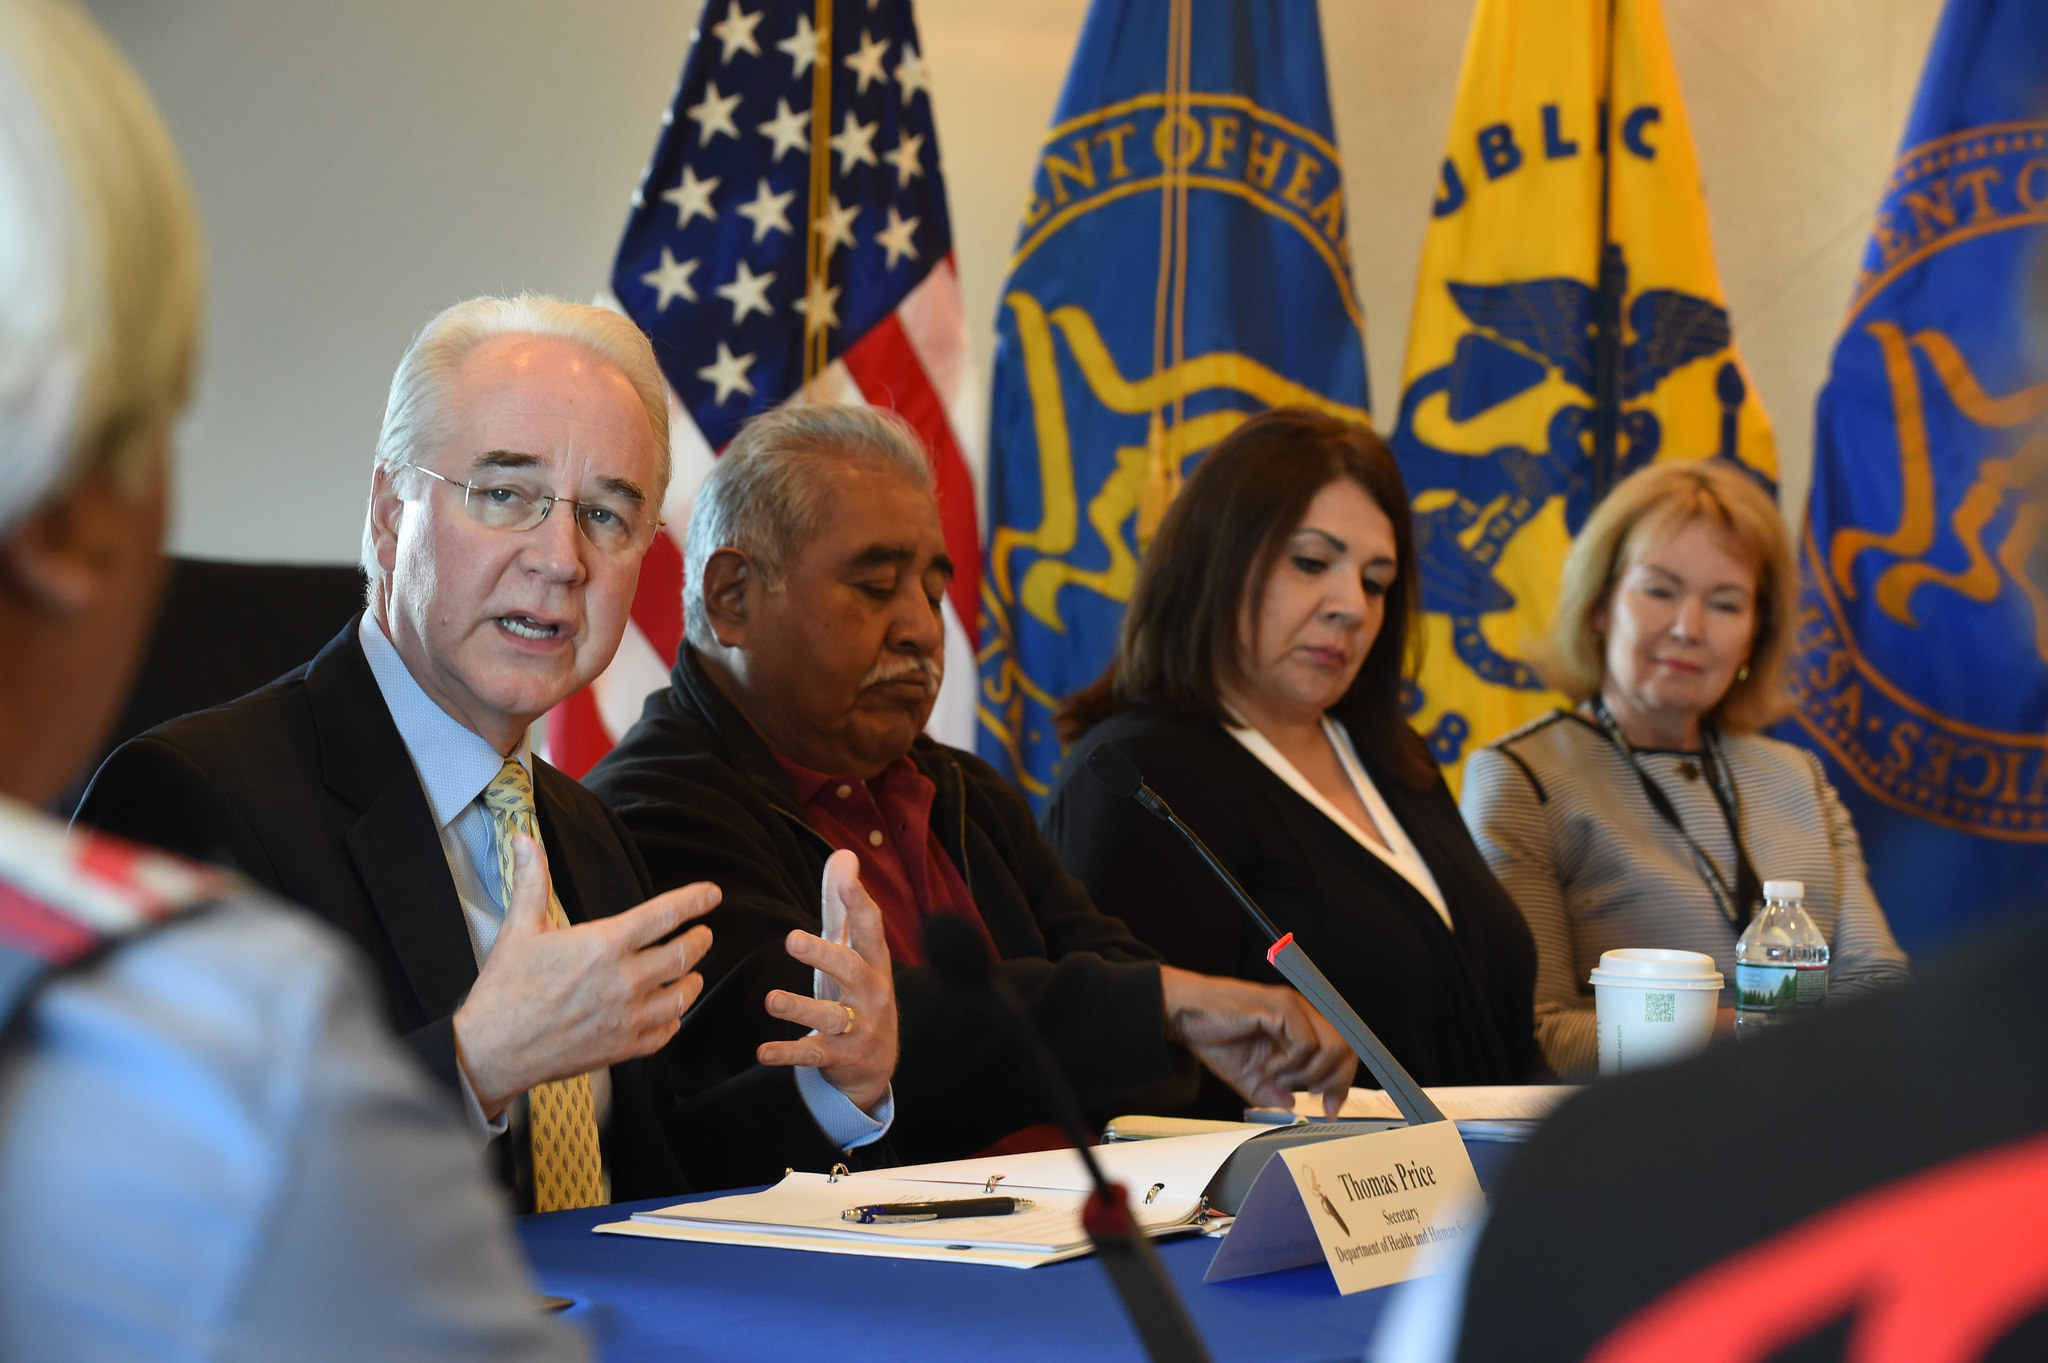 Secretary Of Health And Human Services Continues Outreach In